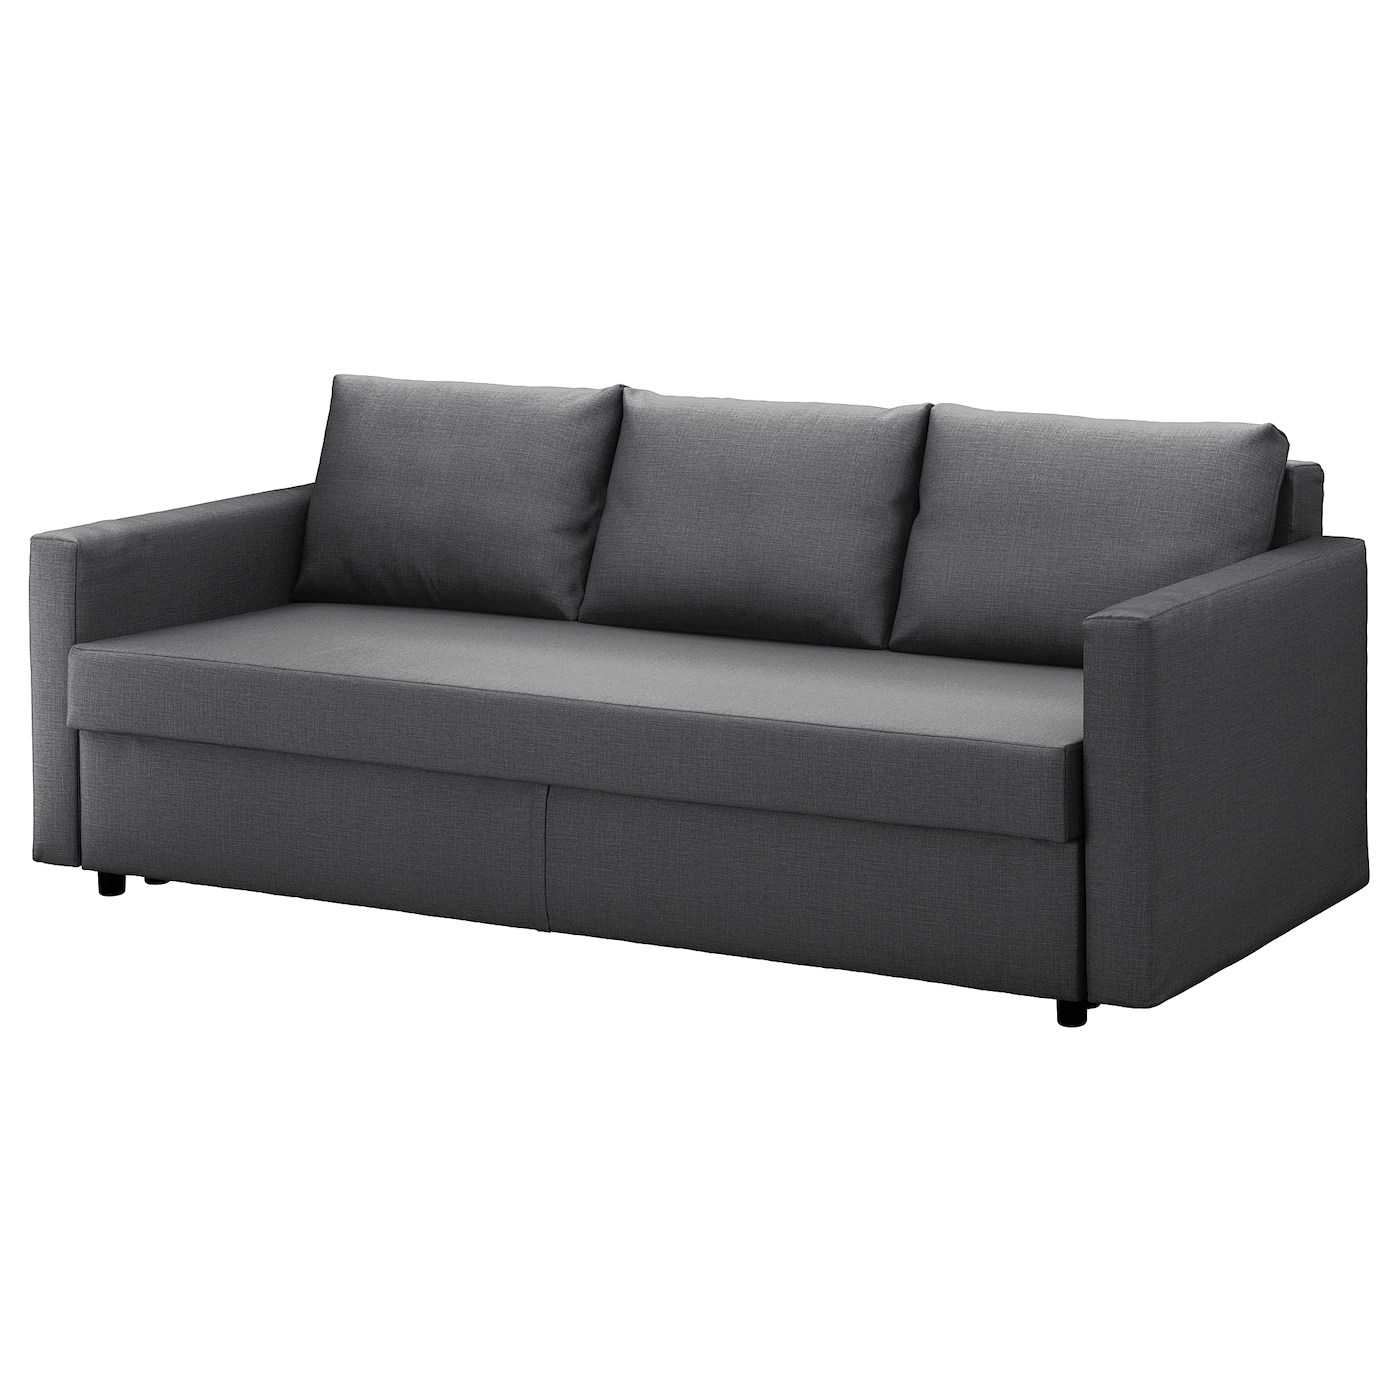 Ikea Online Bettsofa Friheten Three Seat Sofa Bed Skiftebo Dark Grey